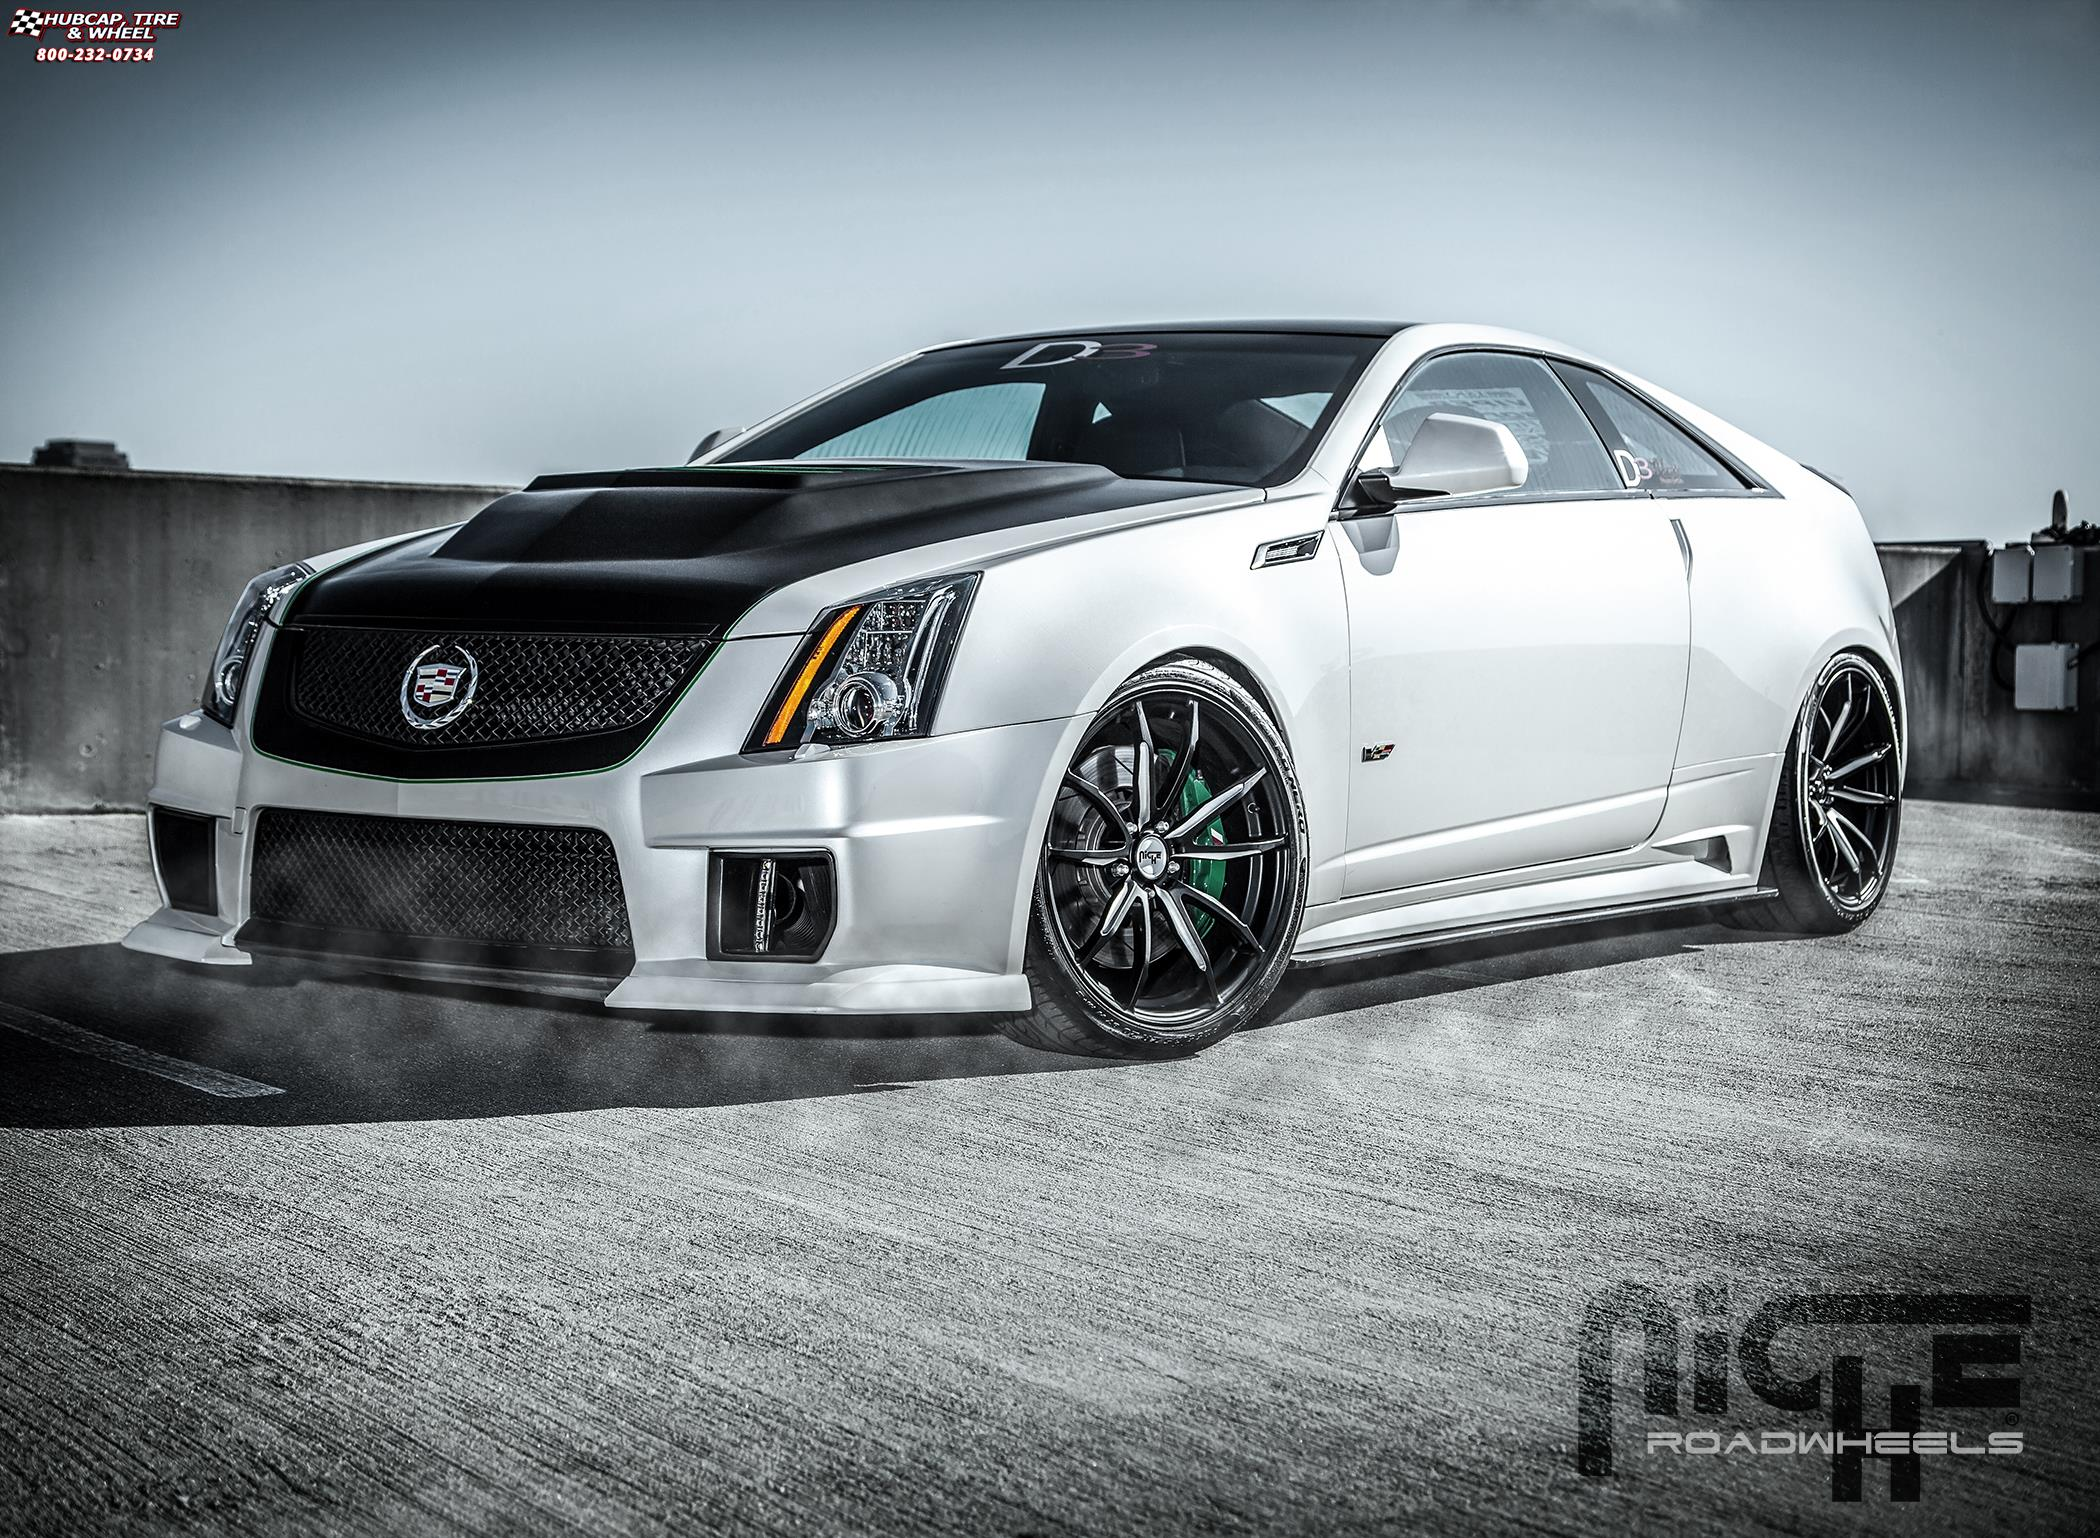 Cadillac CTS Niche Monza - H44 Wheels Matte Black | Brushed Accents